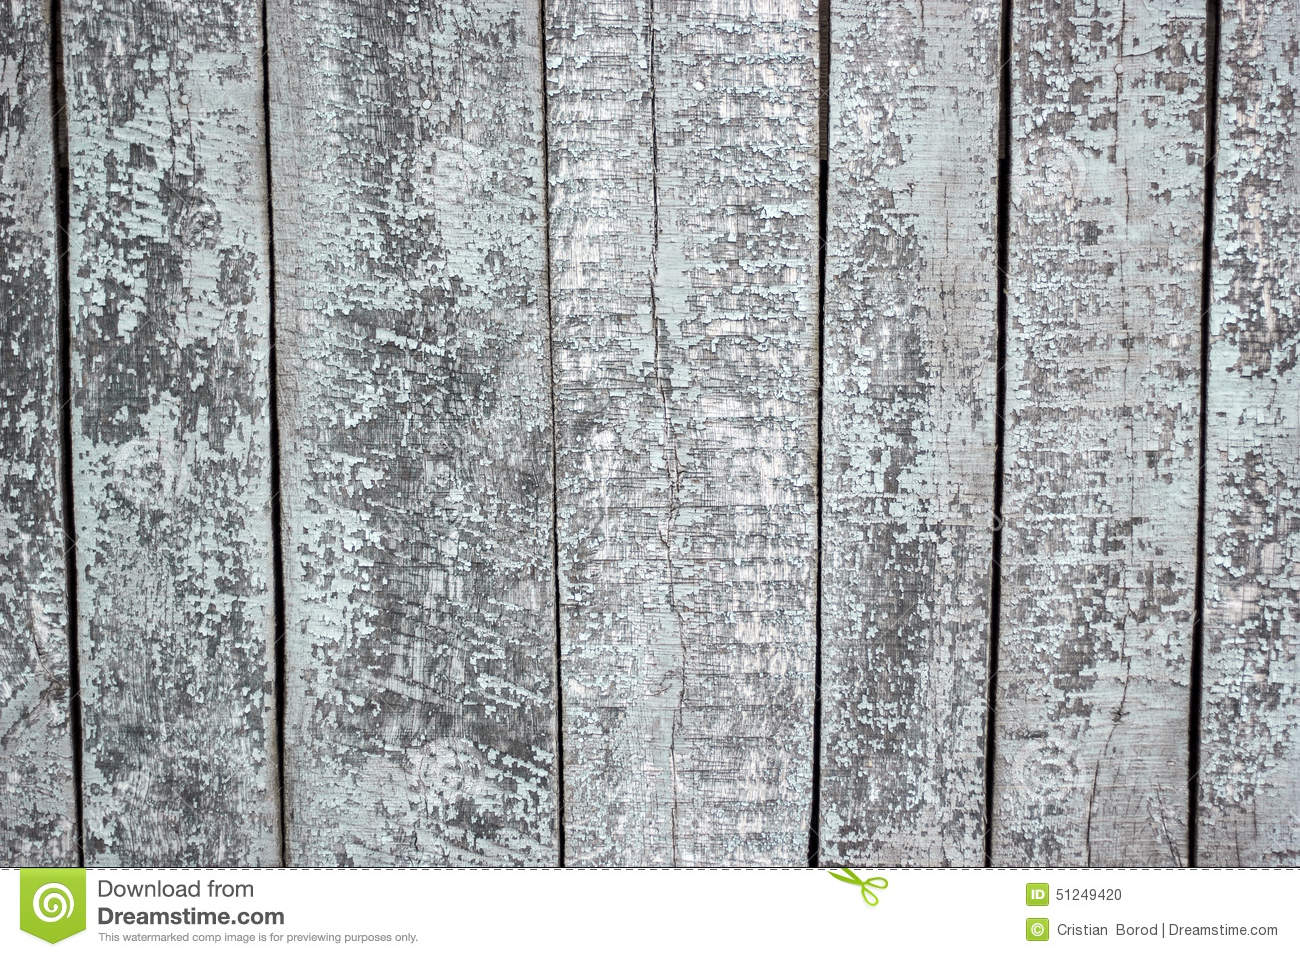 Different Shades Of Gray painted wood grunge background texture stock photo - image: 51249420